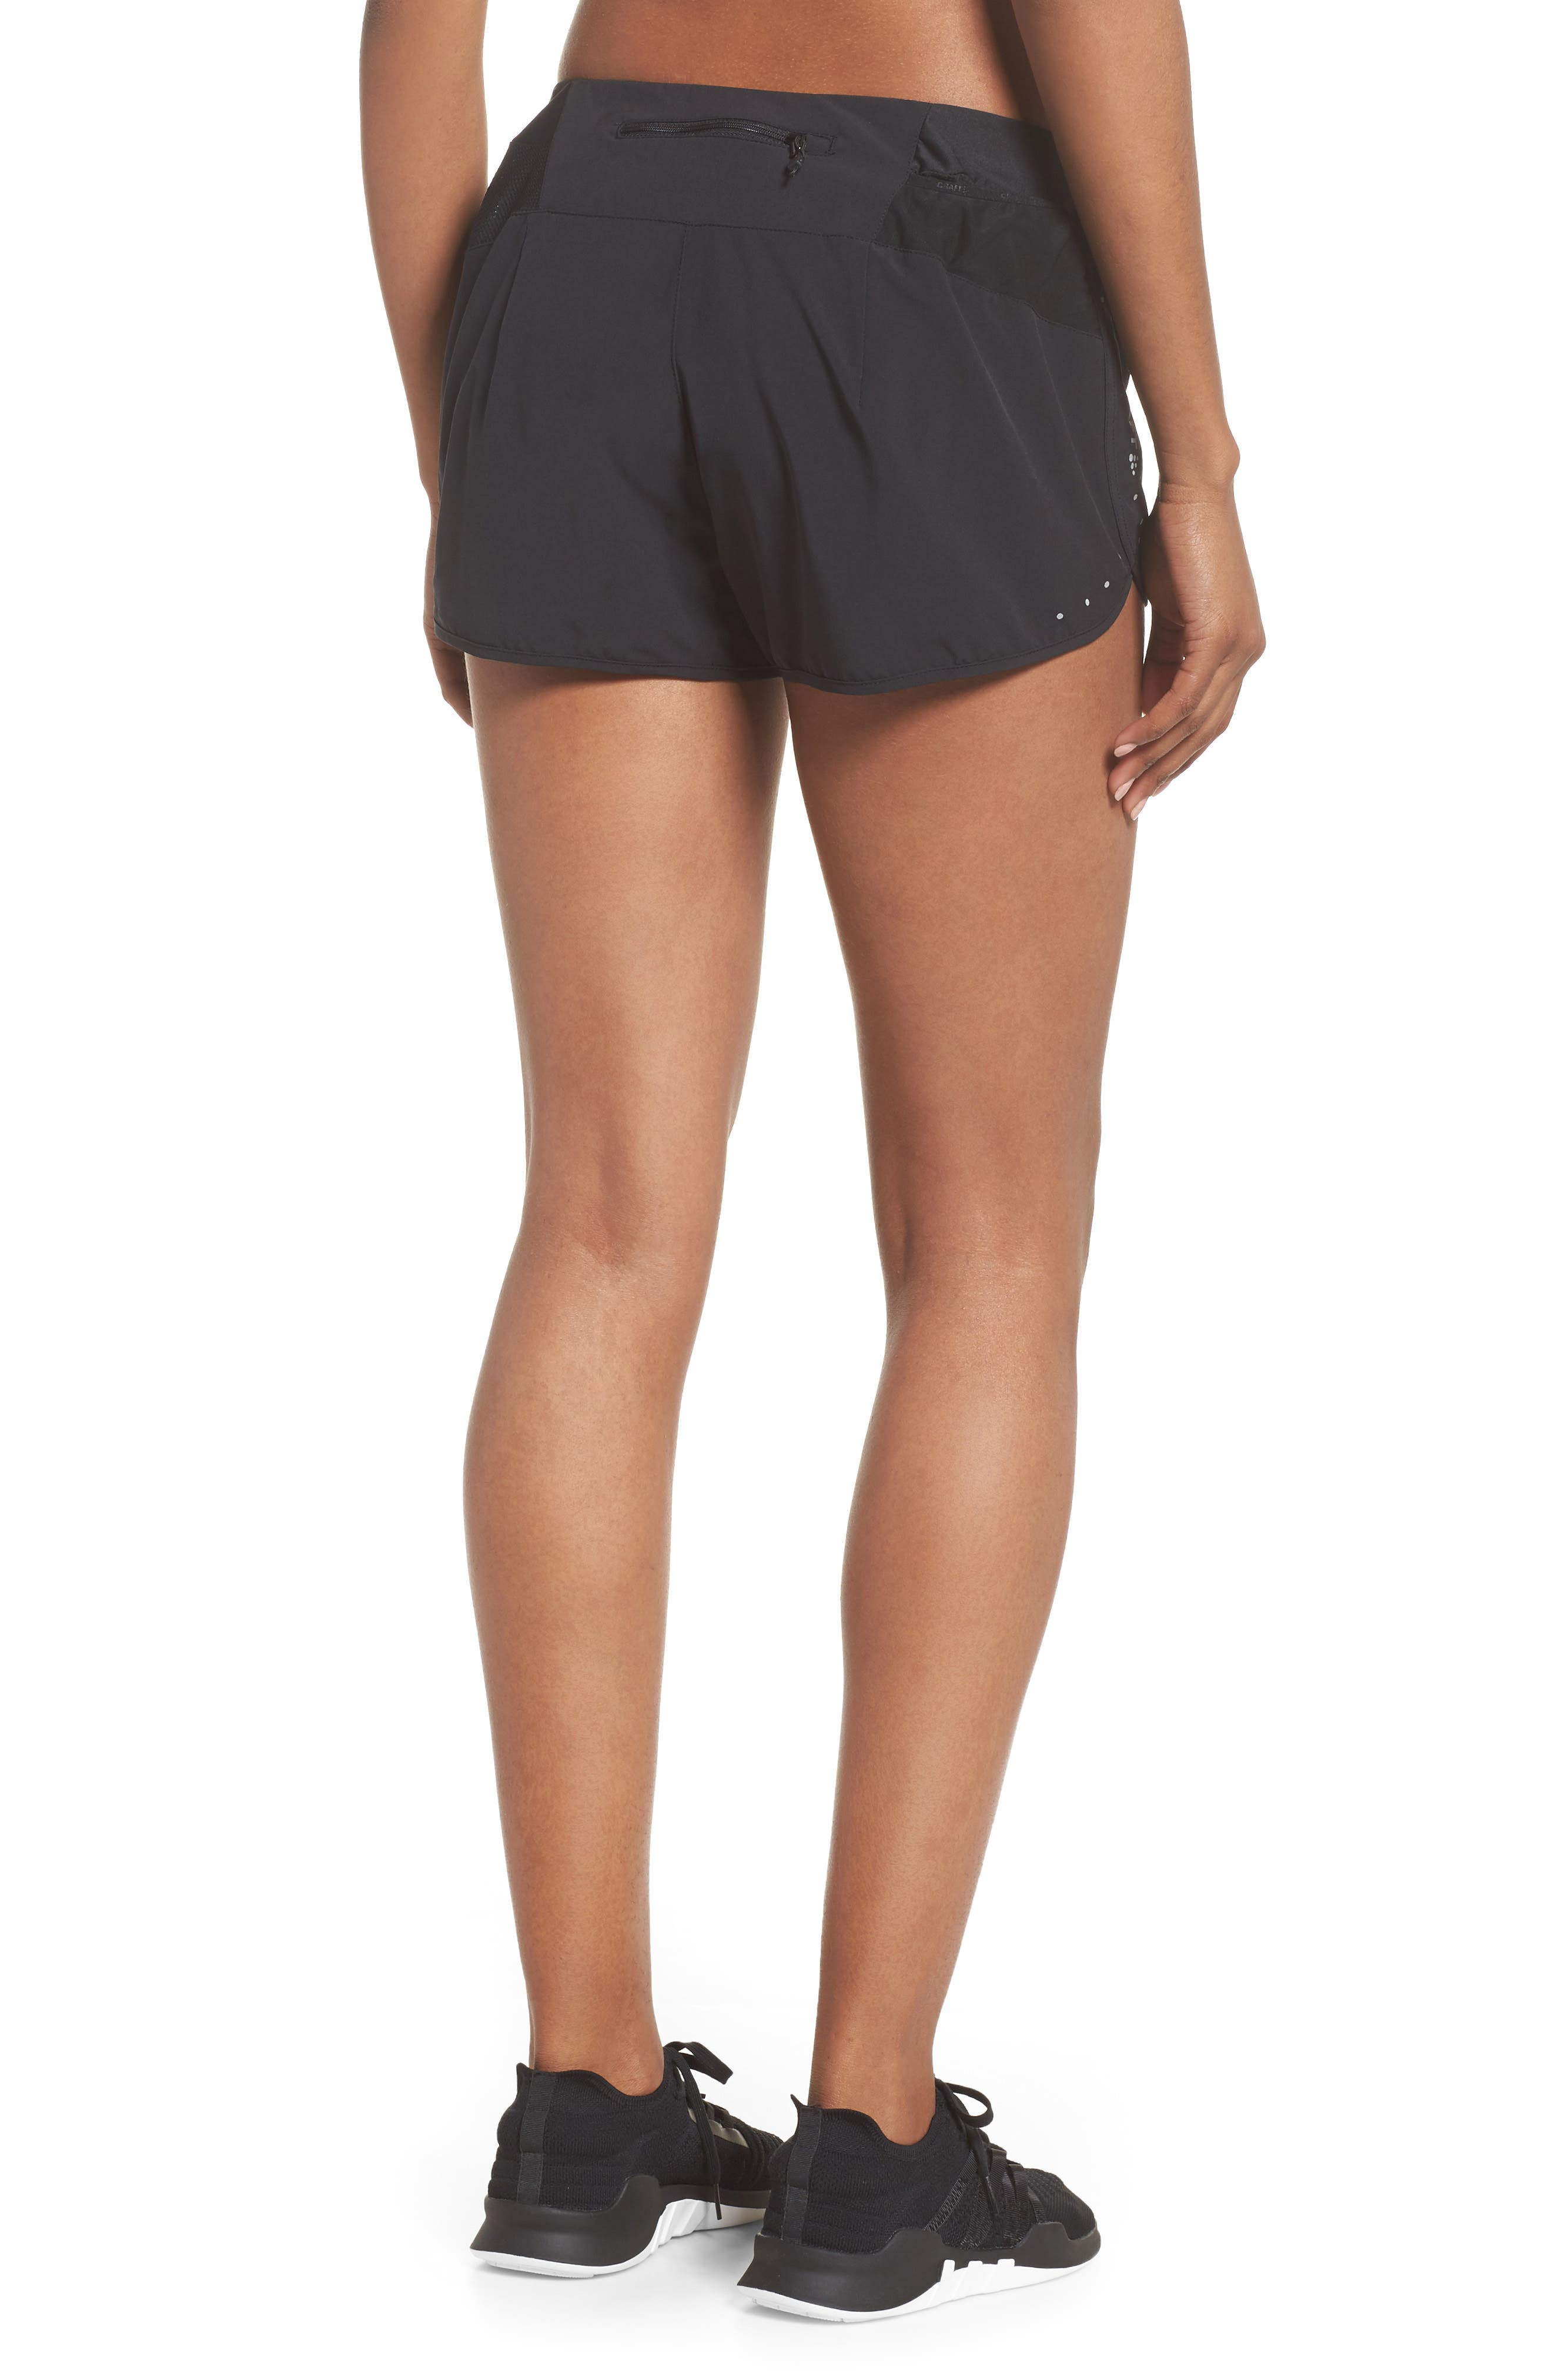 Essential Running Shorts,                             Alternate thumbnail 2, color,                             001